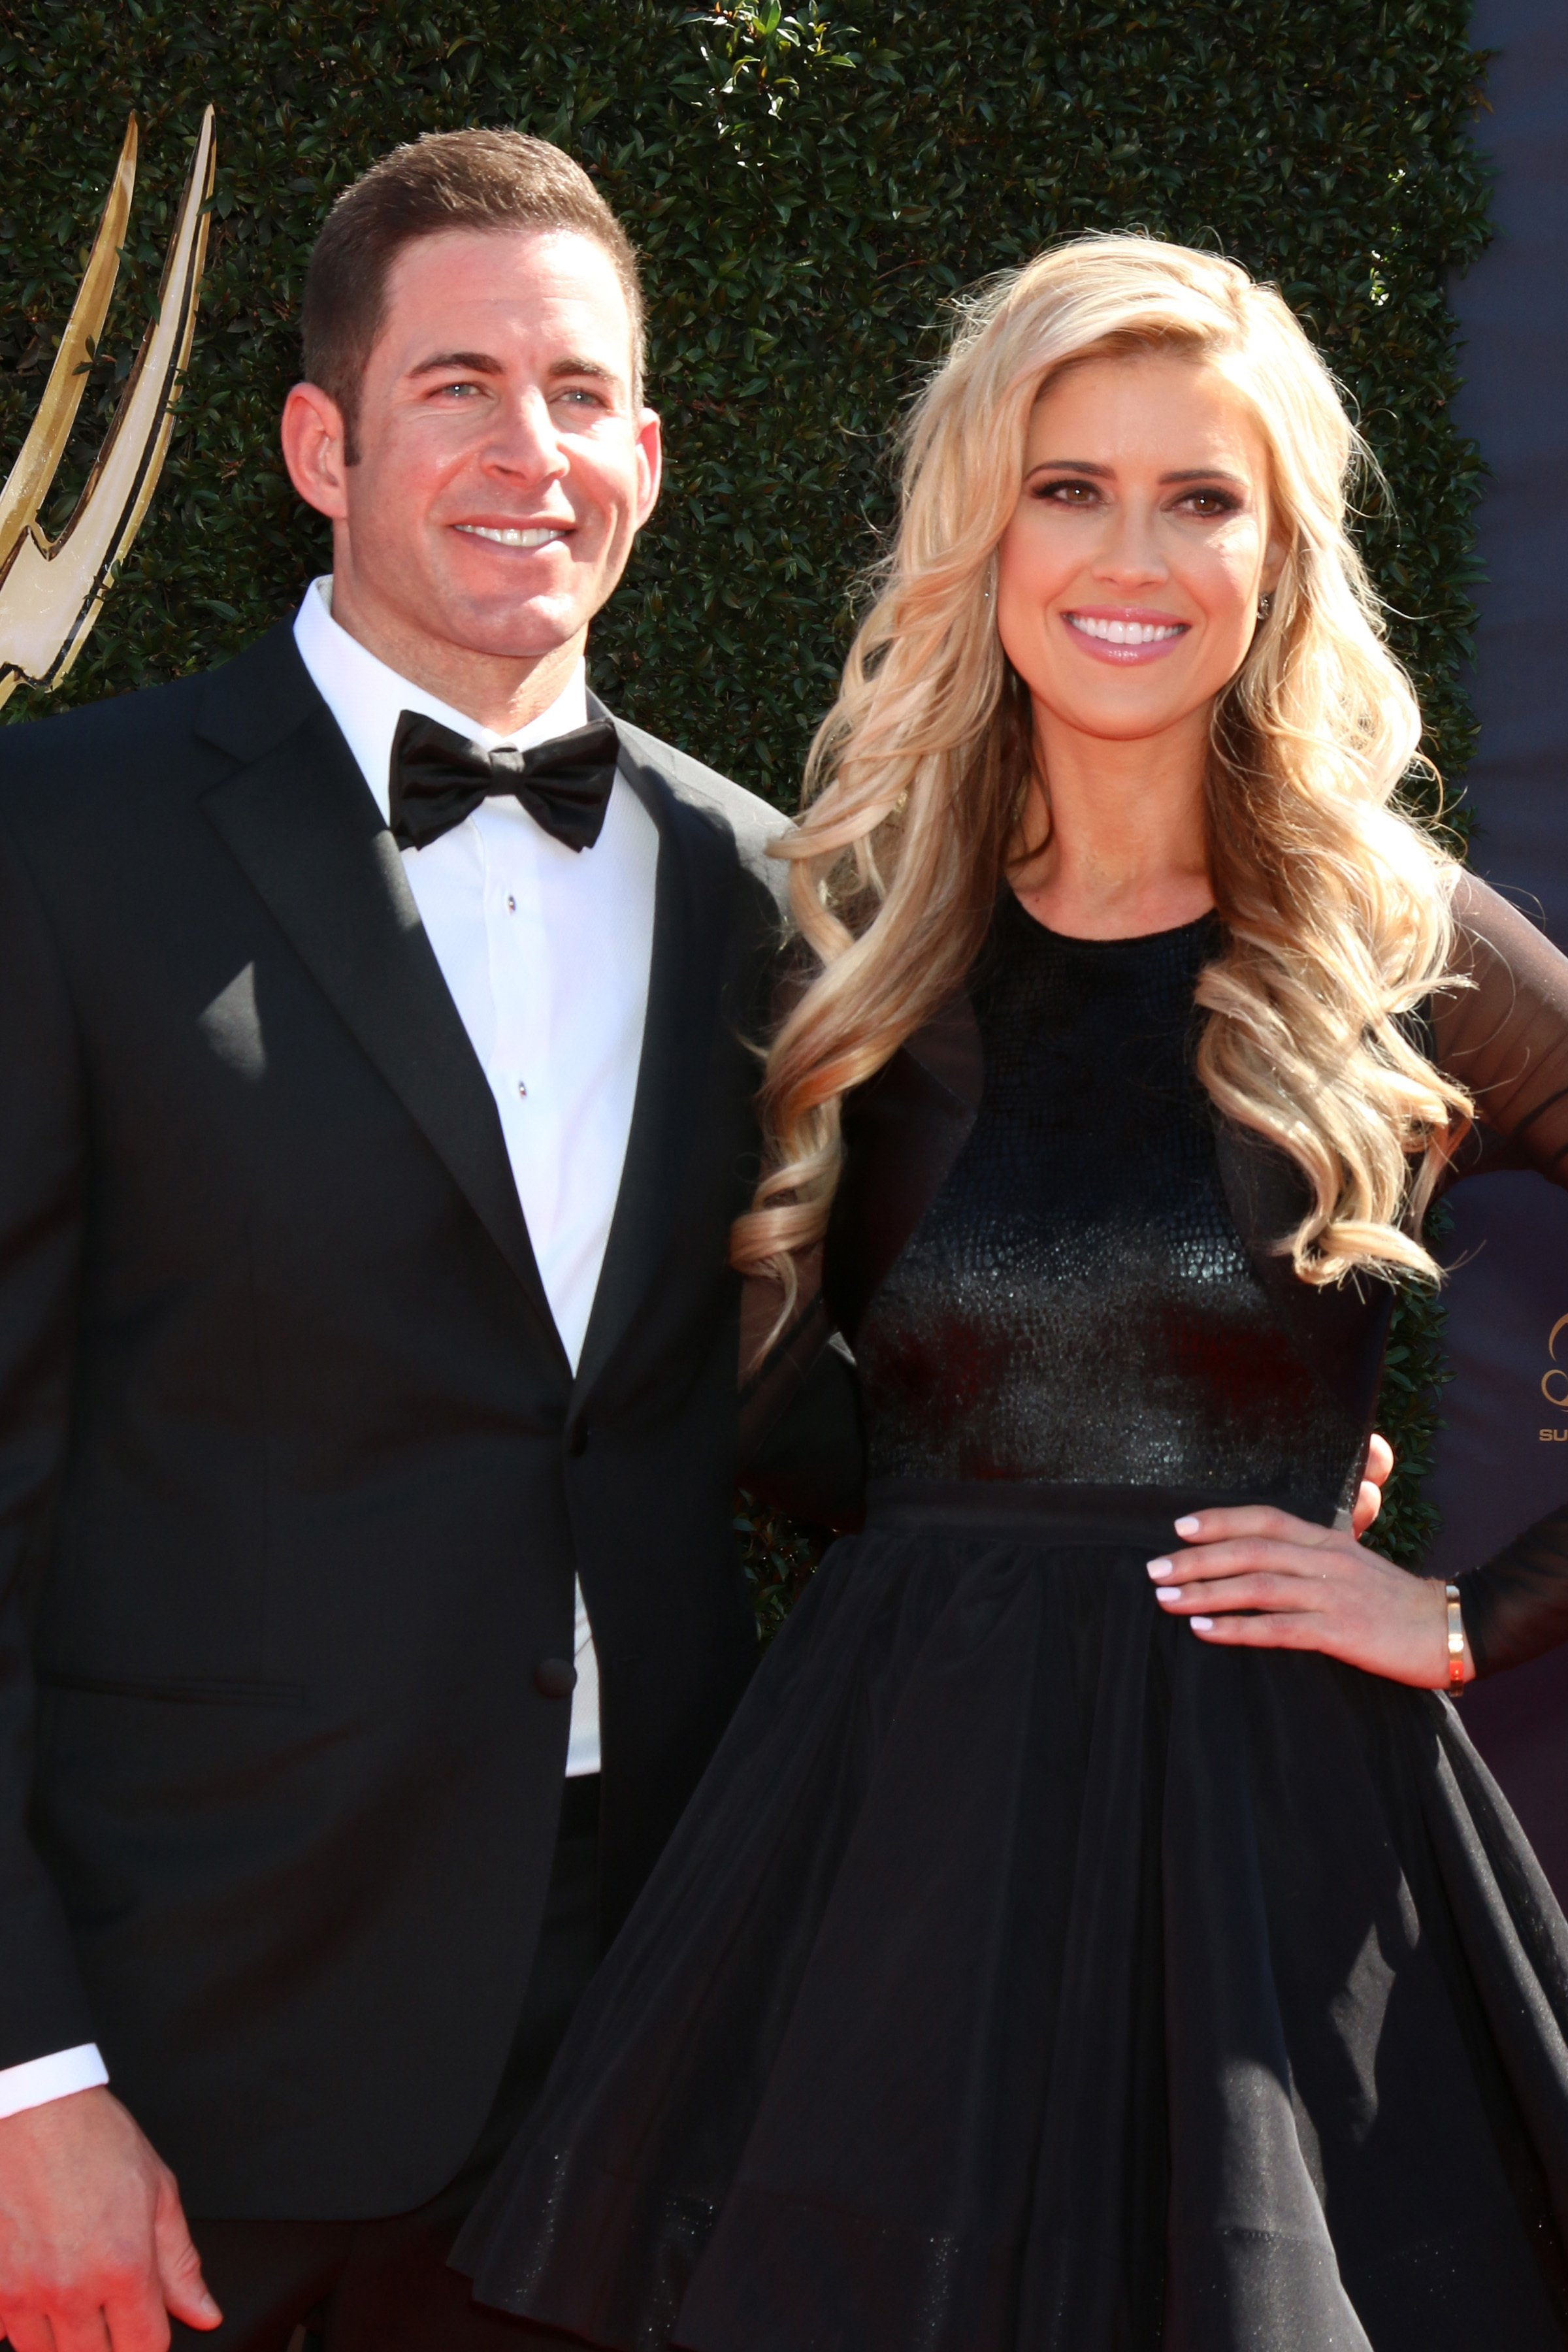 """Christina Anstead and ex-husband Tarek El Moussa star together on """"Flip or Flop""""